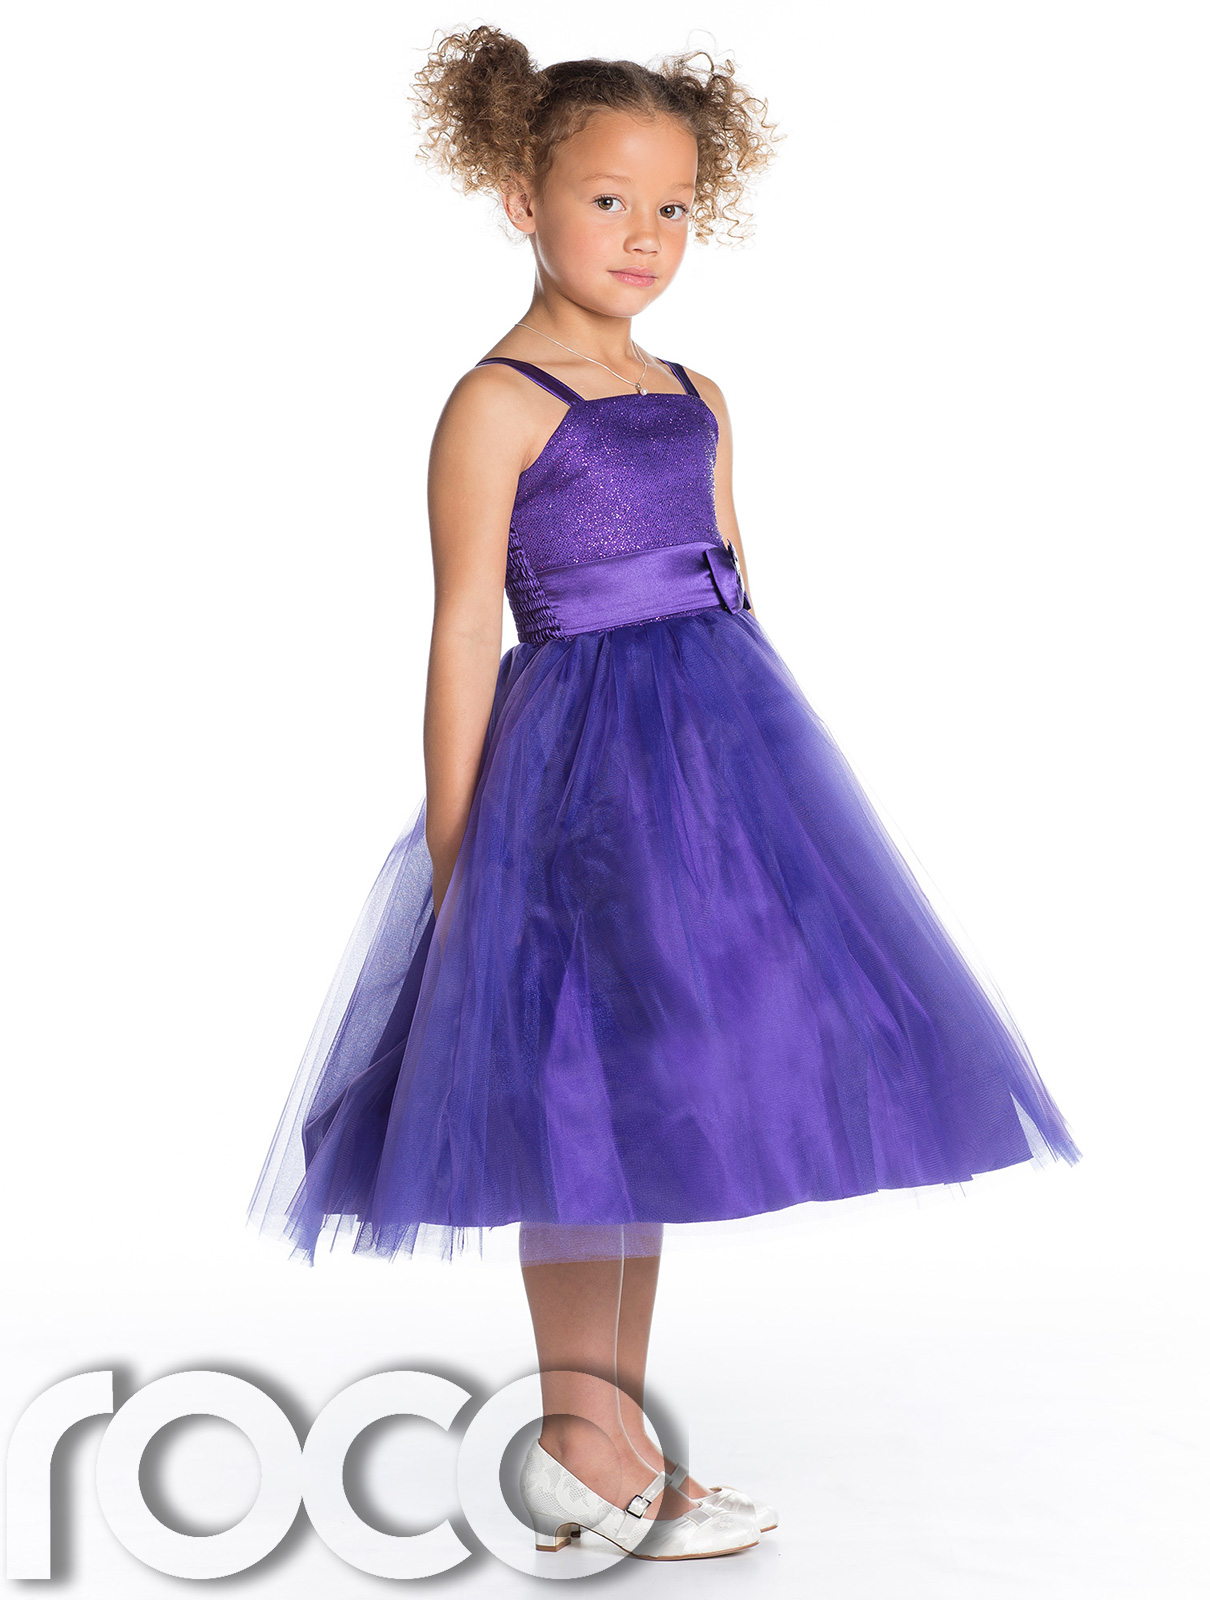 Girls purple dress bridesmaid dresses girls party dress for Wedding dresses for girl